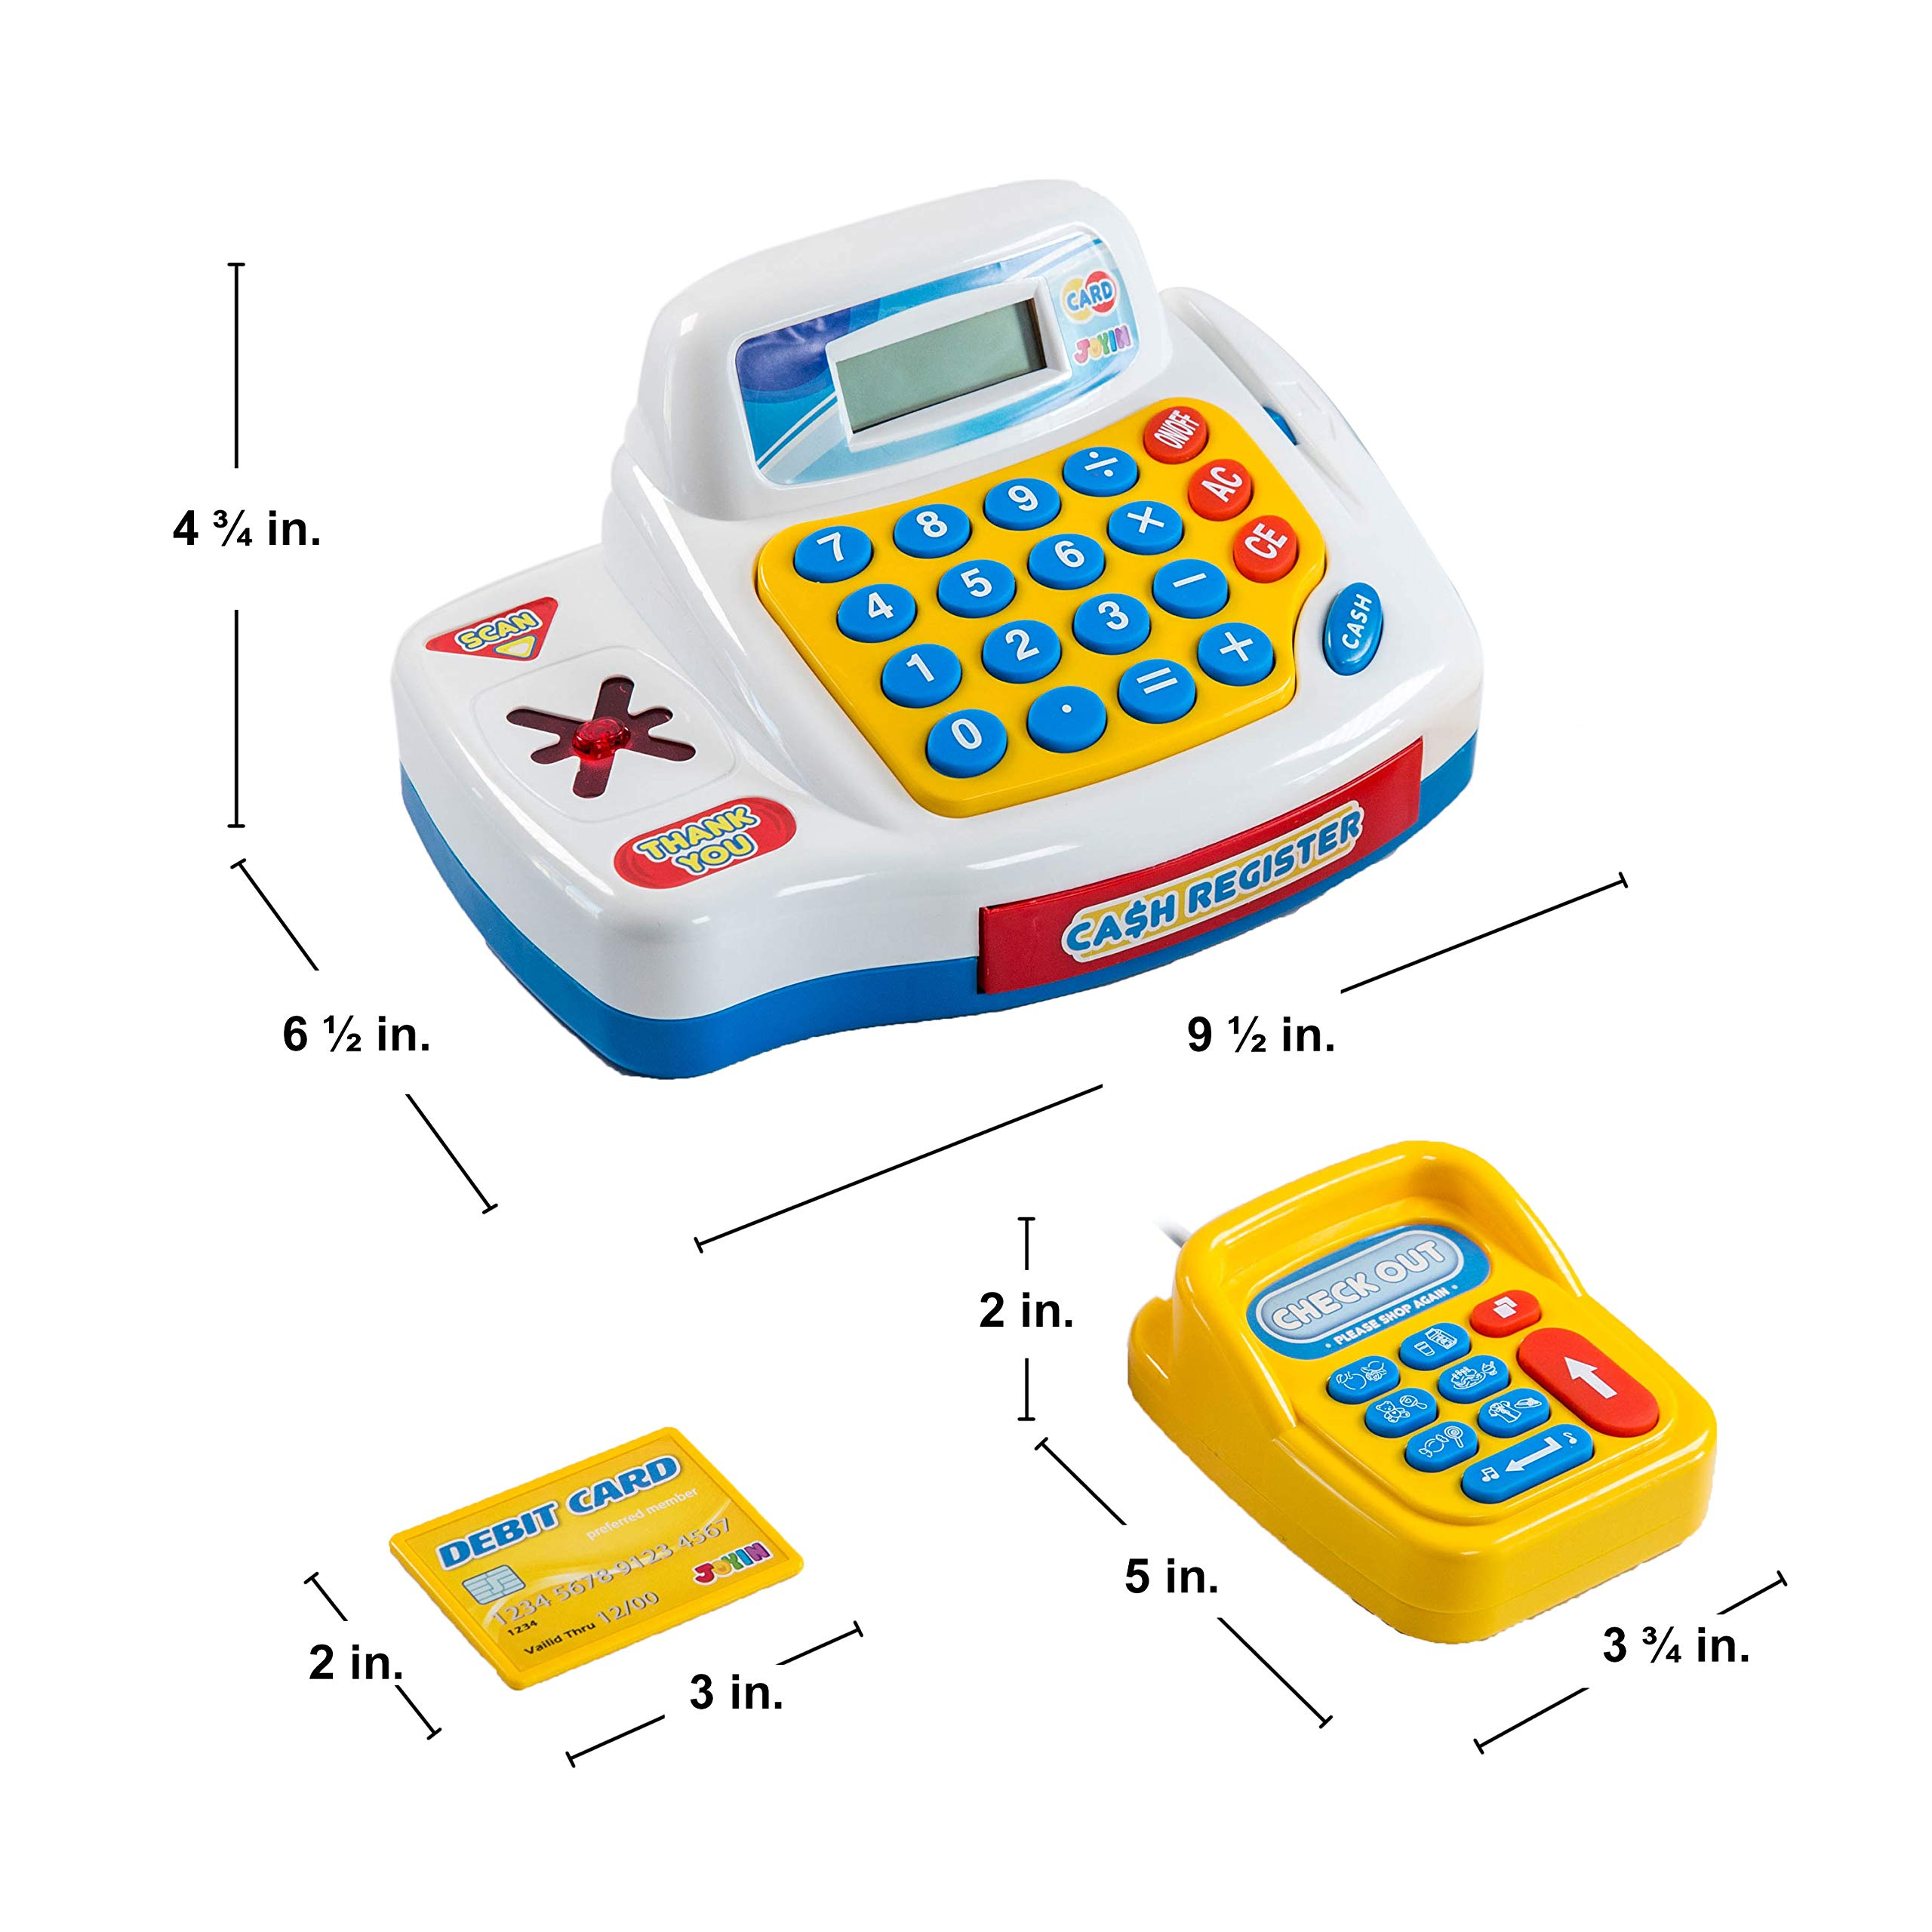 Toy Cash Register Shopping Pretend Play Money Machine with Dual Languages, Scanner, Card Reader and Grocery Play Food Set for Kids Boys and Girls Gifts, Toddler Interactive Learning, Teaching Tools. by JOYIN (Image #4)